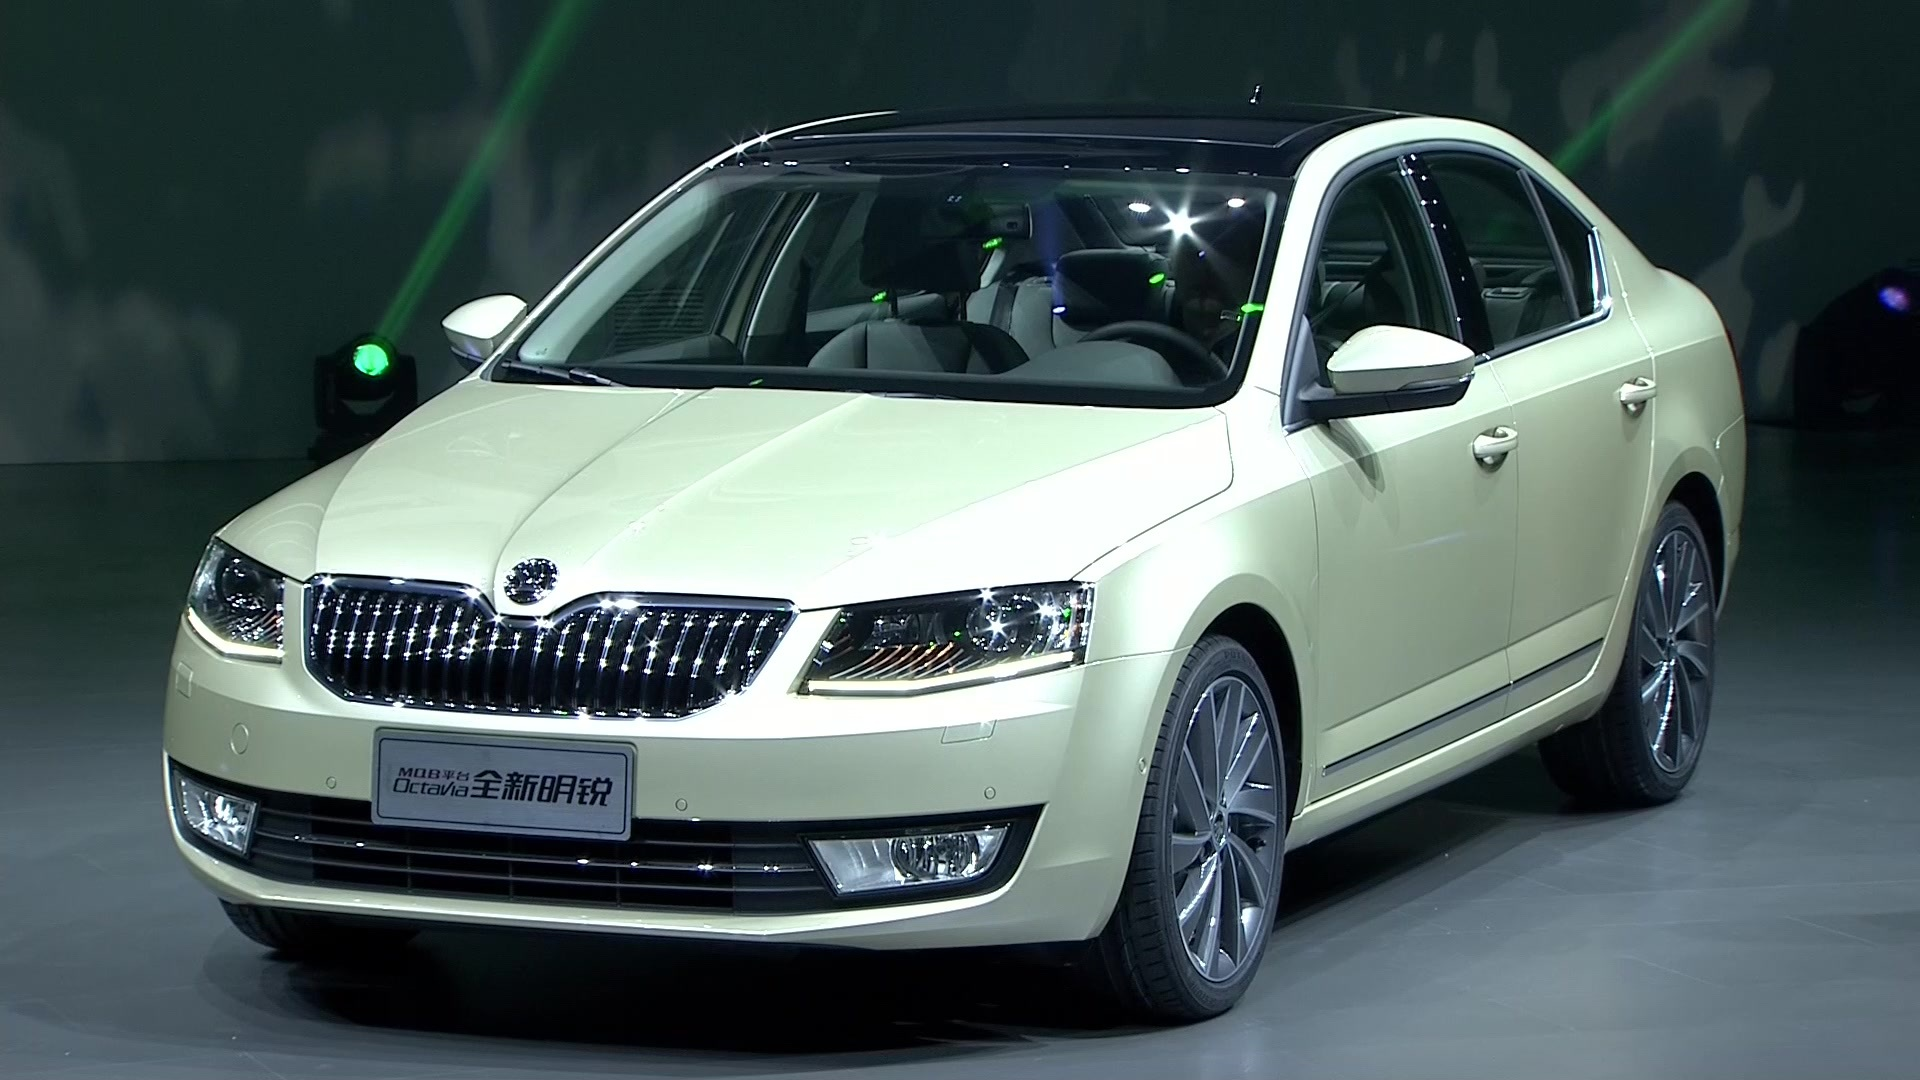 2015 skoda octavia wallpapers high quality download free. Black Bedroom Furniture Sets. Home Design Ideas